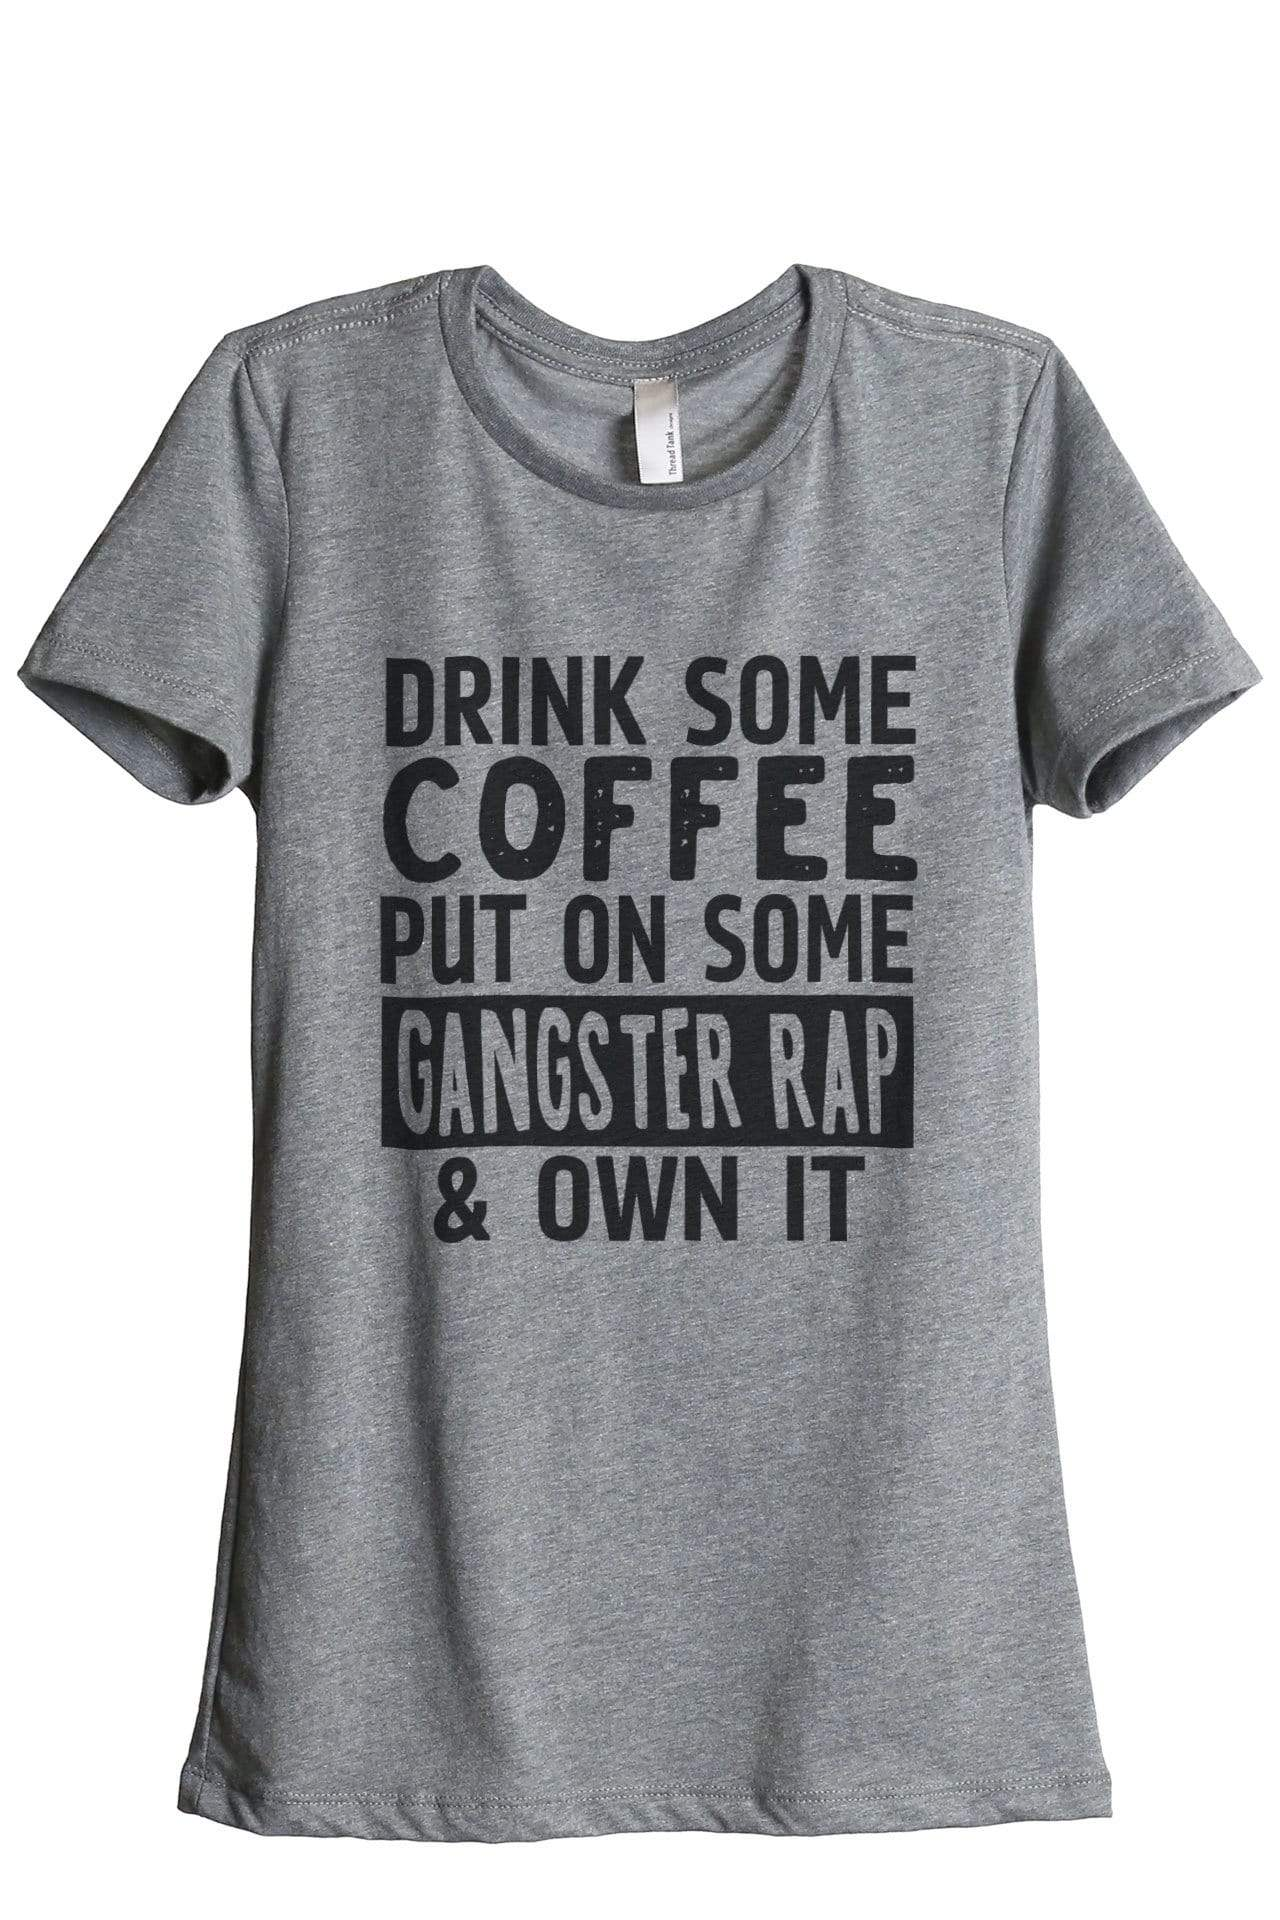 Drink Some Coffee Put on Some Gangster Rap And Own It - Thread Tank | Stories You Can Wear | T-Shirts, Tank Tops and Sweatshirts